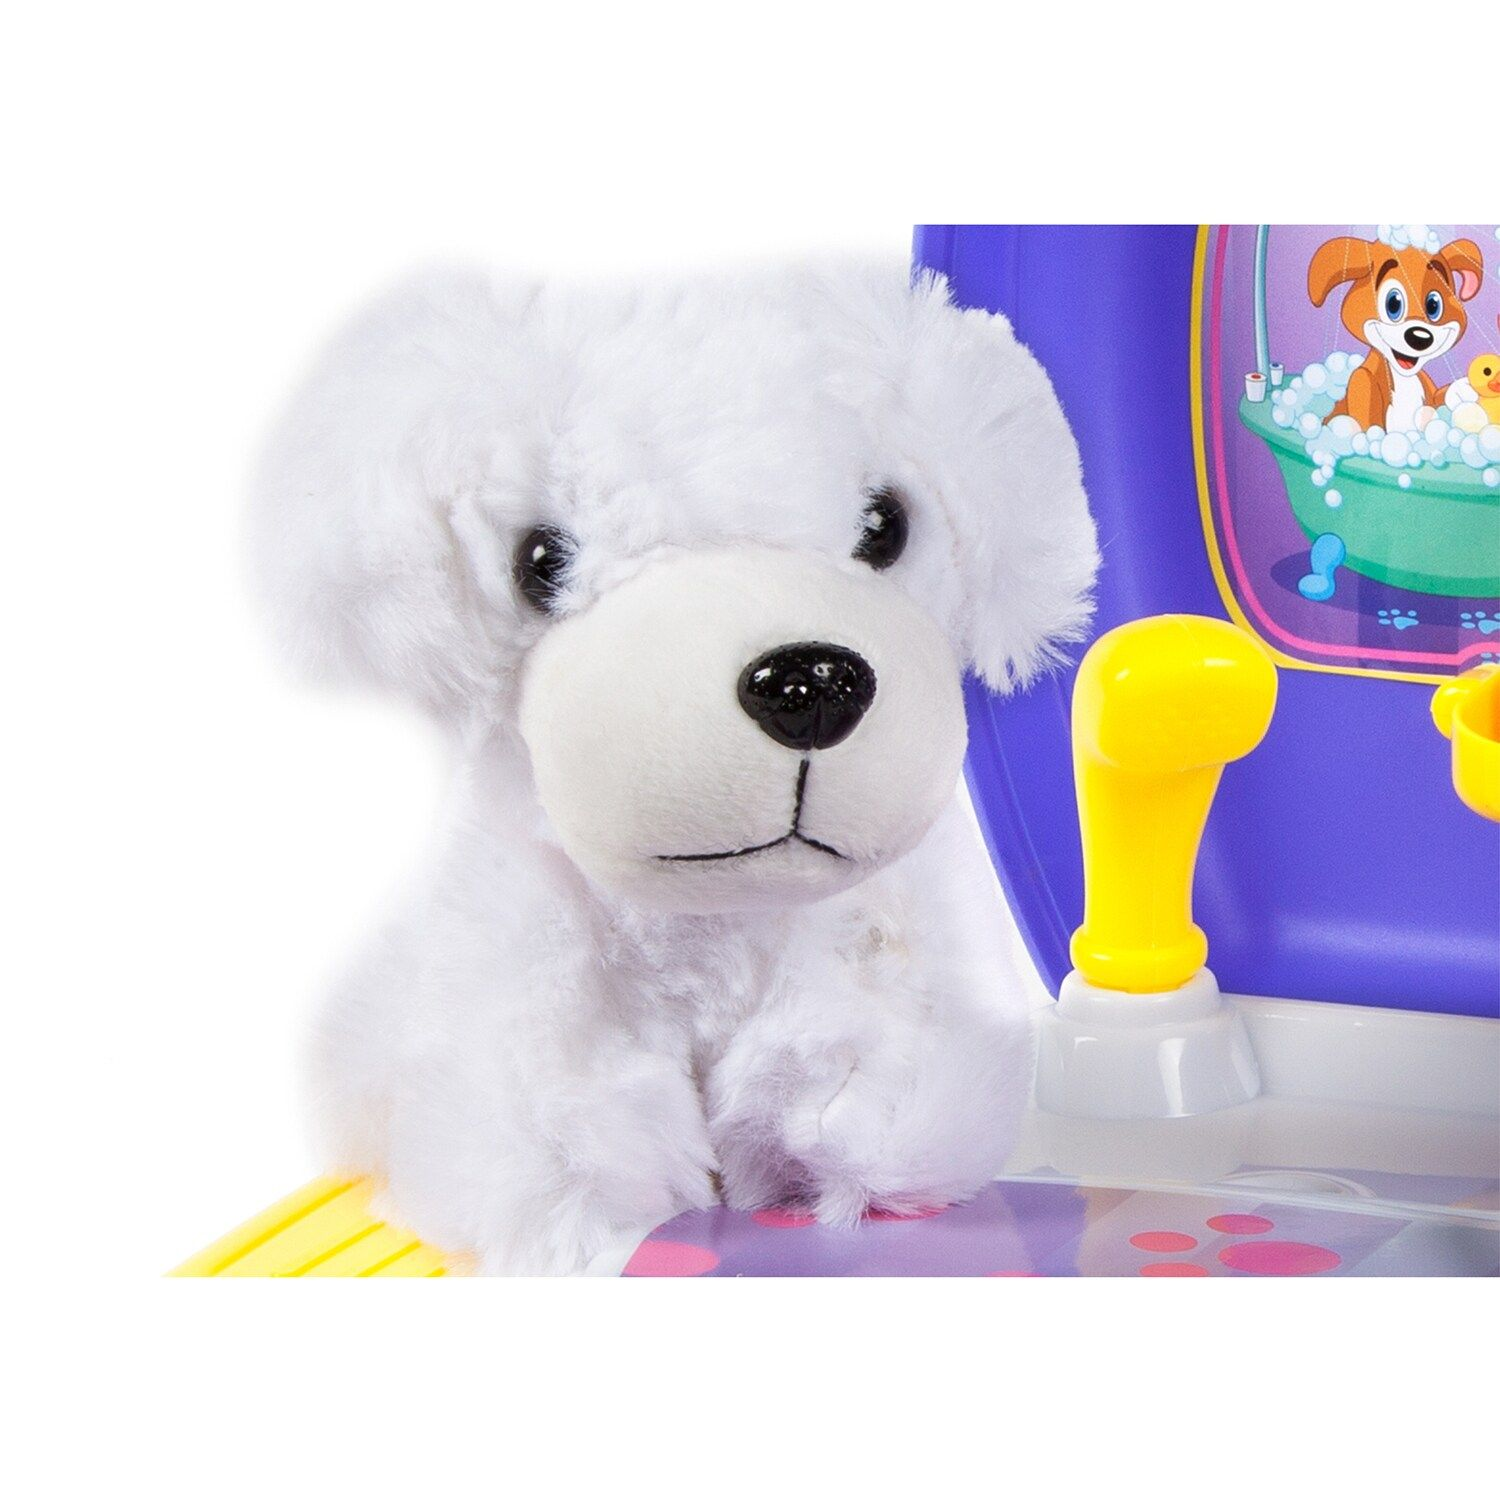 World Tech Toys Pet Grooming Suitcase Playset #techtoys